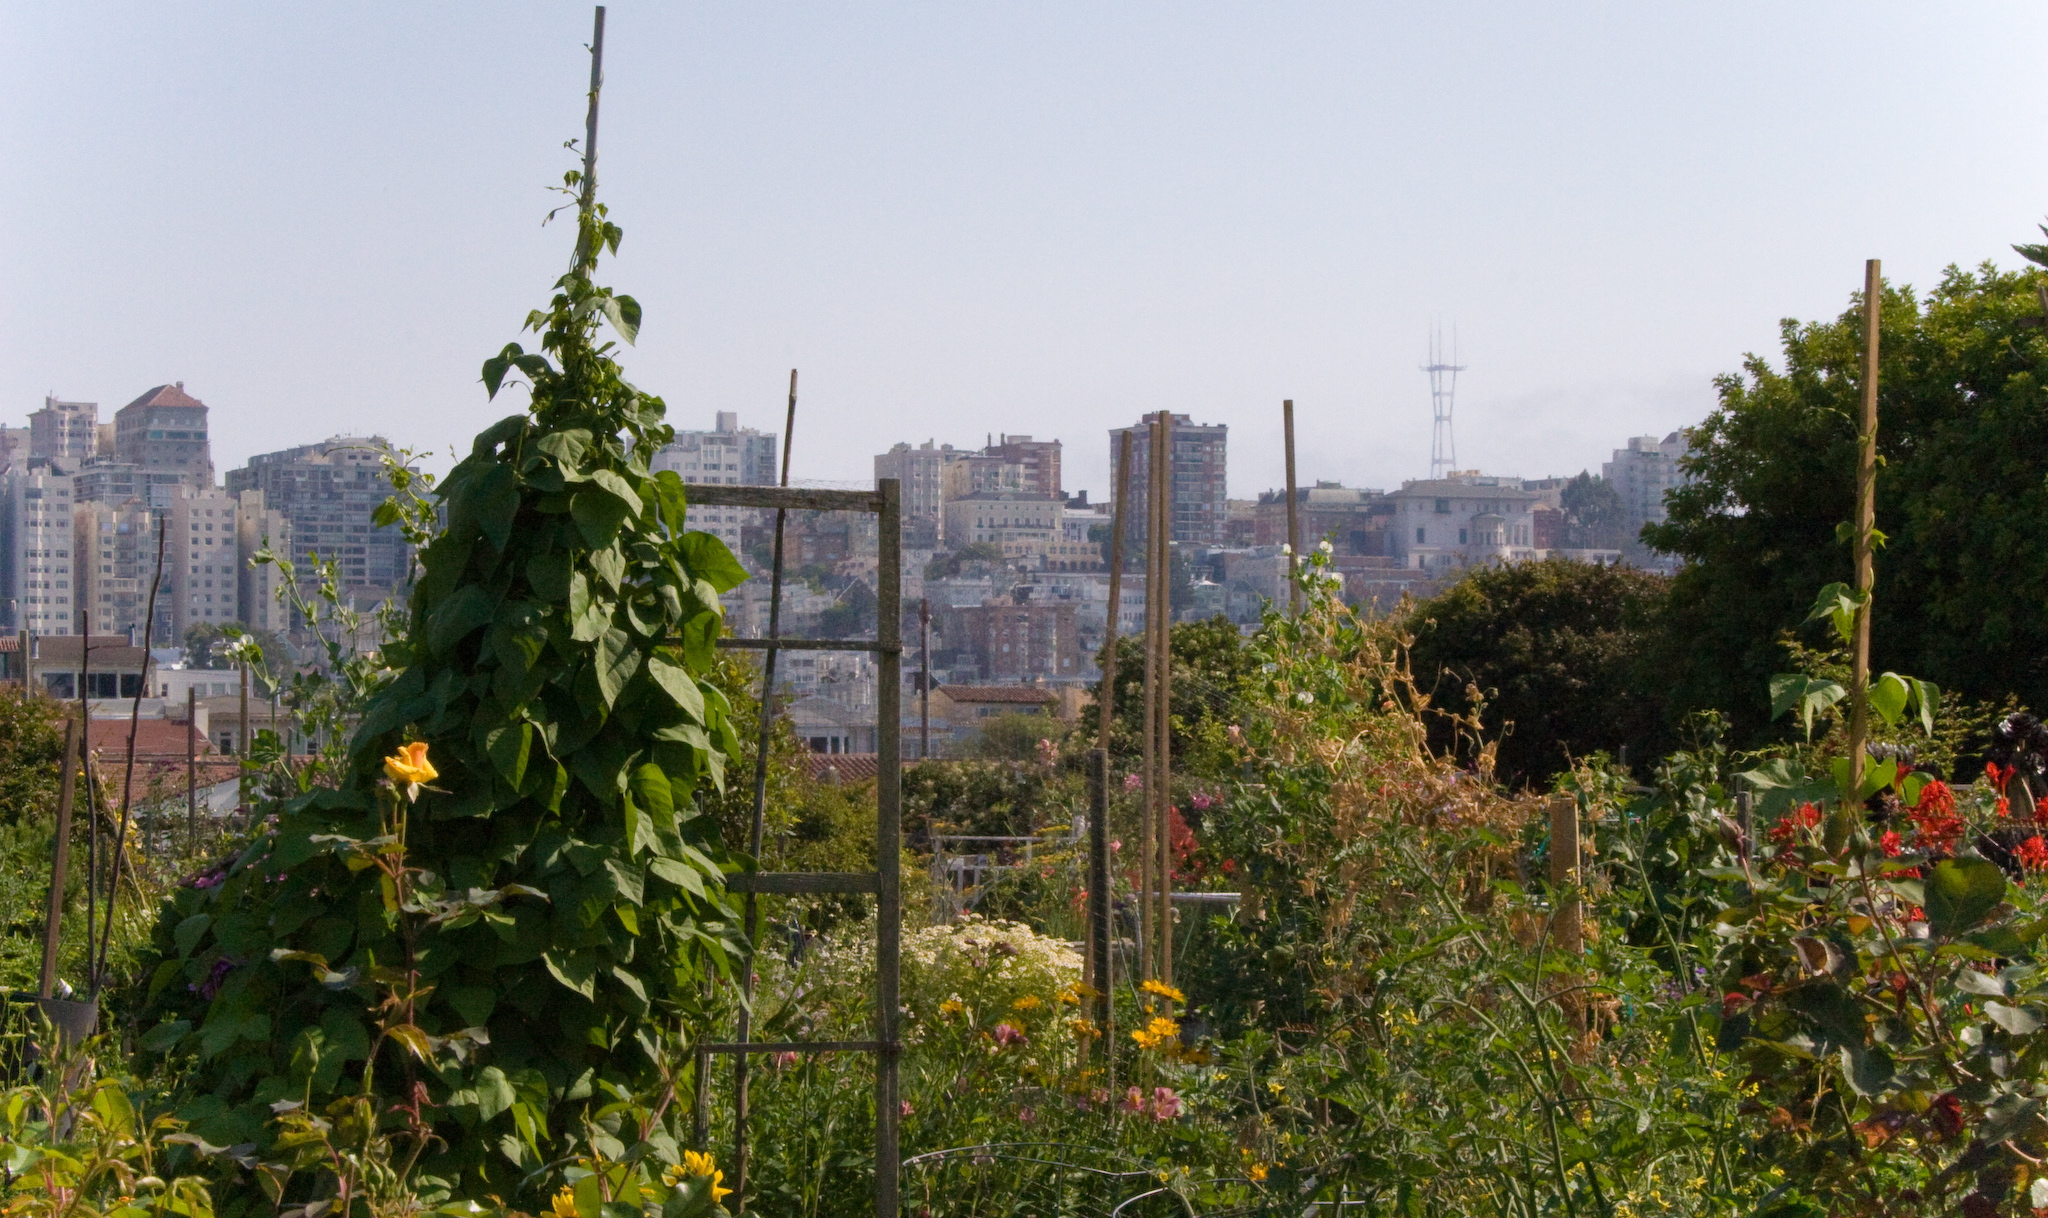 The Agriculture Garden nurtures seasonal crops and is a source of education about nutrition.